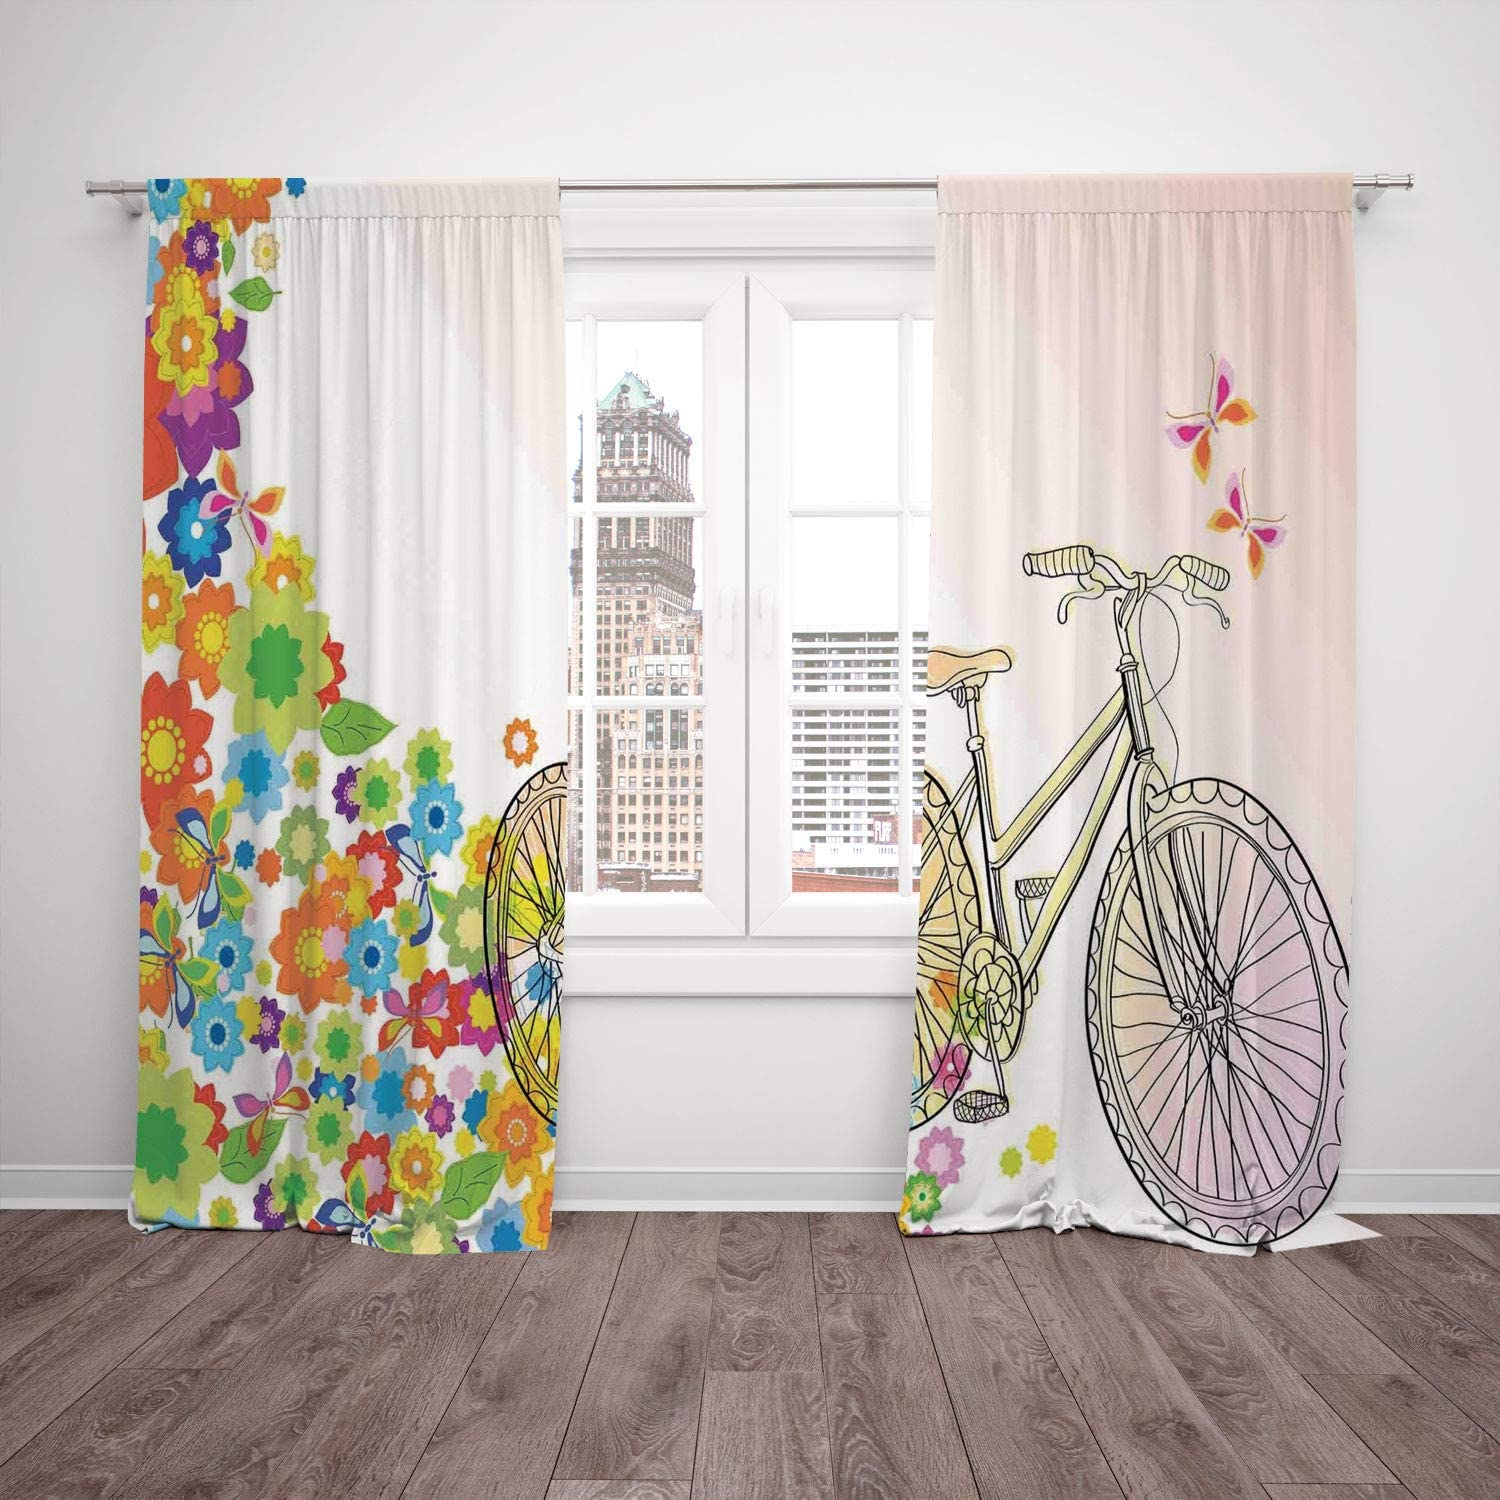 Polyester Window Drapes Kitchen Curtains Bicycle Hand Drawn Bicycle With Extending Flower Path Sixties Hippie Fashion Times Funky Pattern Multi Living Room Bedroom Kitchen Cafe Window Drapes 2 Panel S Amazon Co Uk Kitchen Home